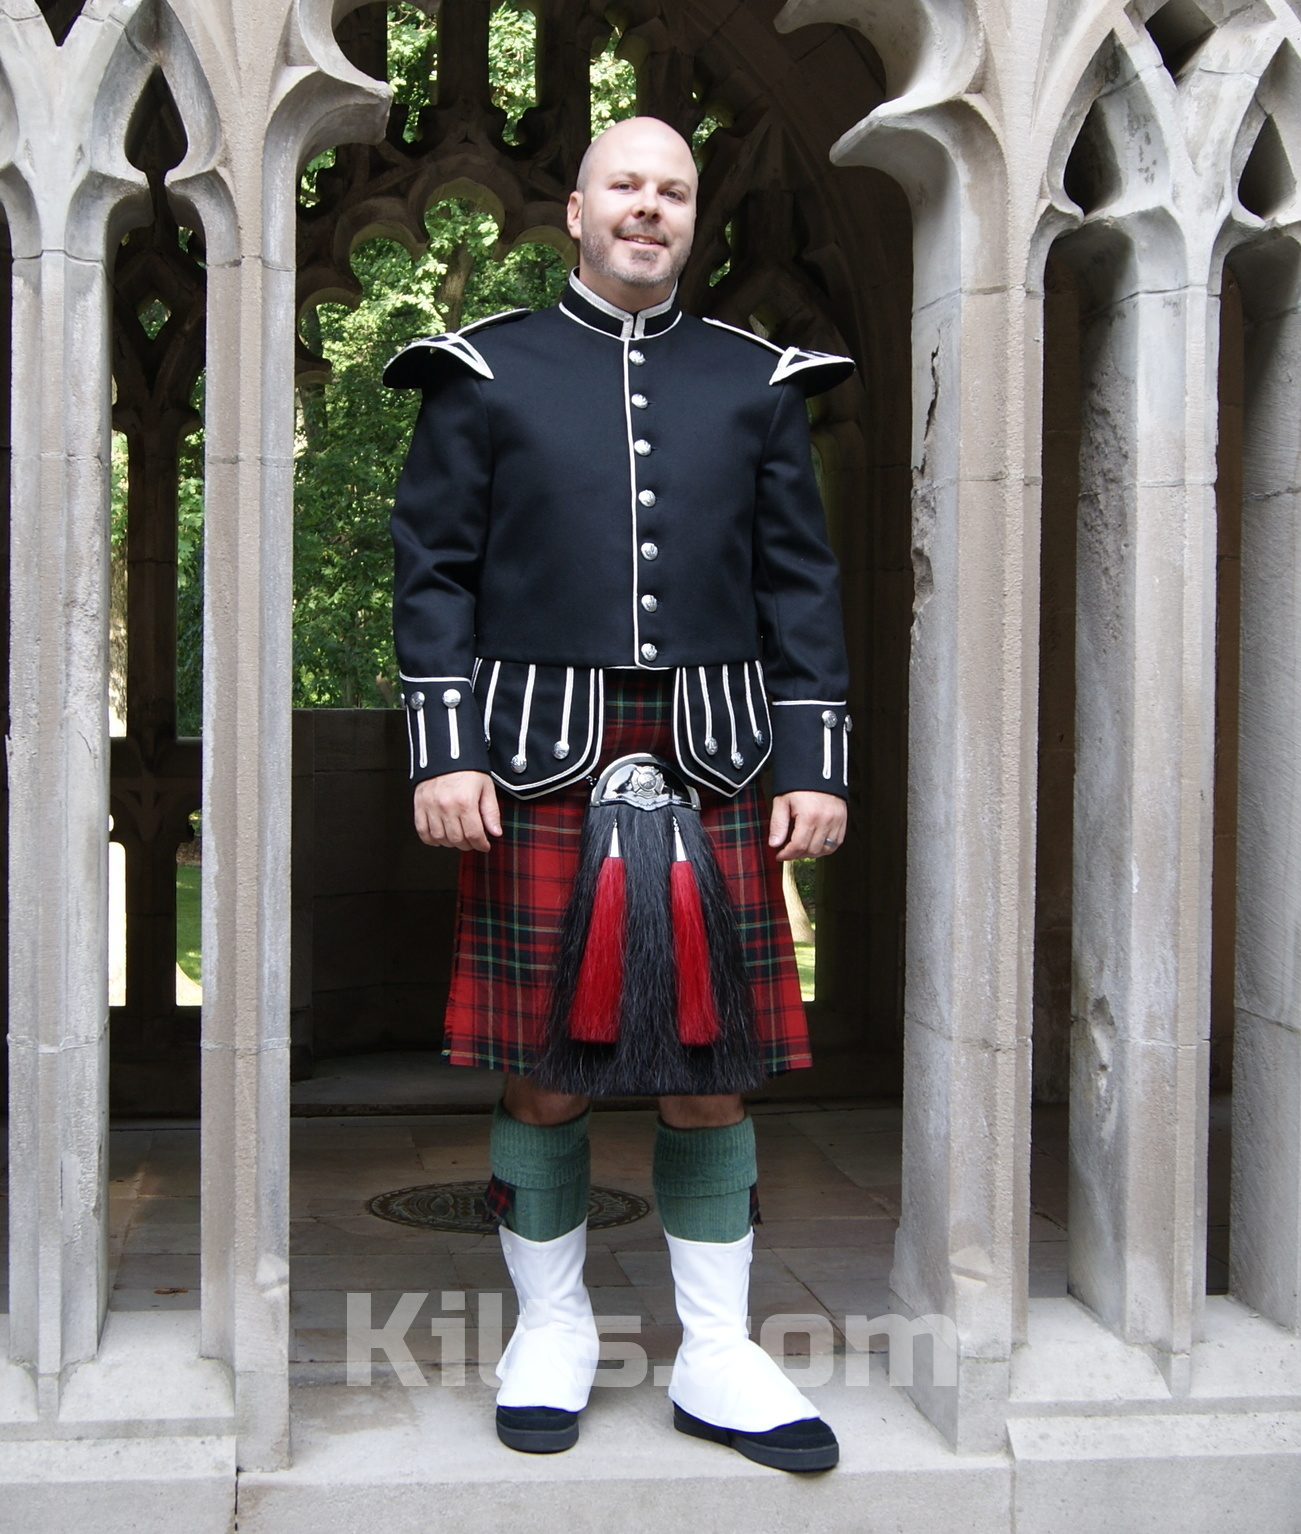 Do you need a Military Doublet Jacket for Kilts?